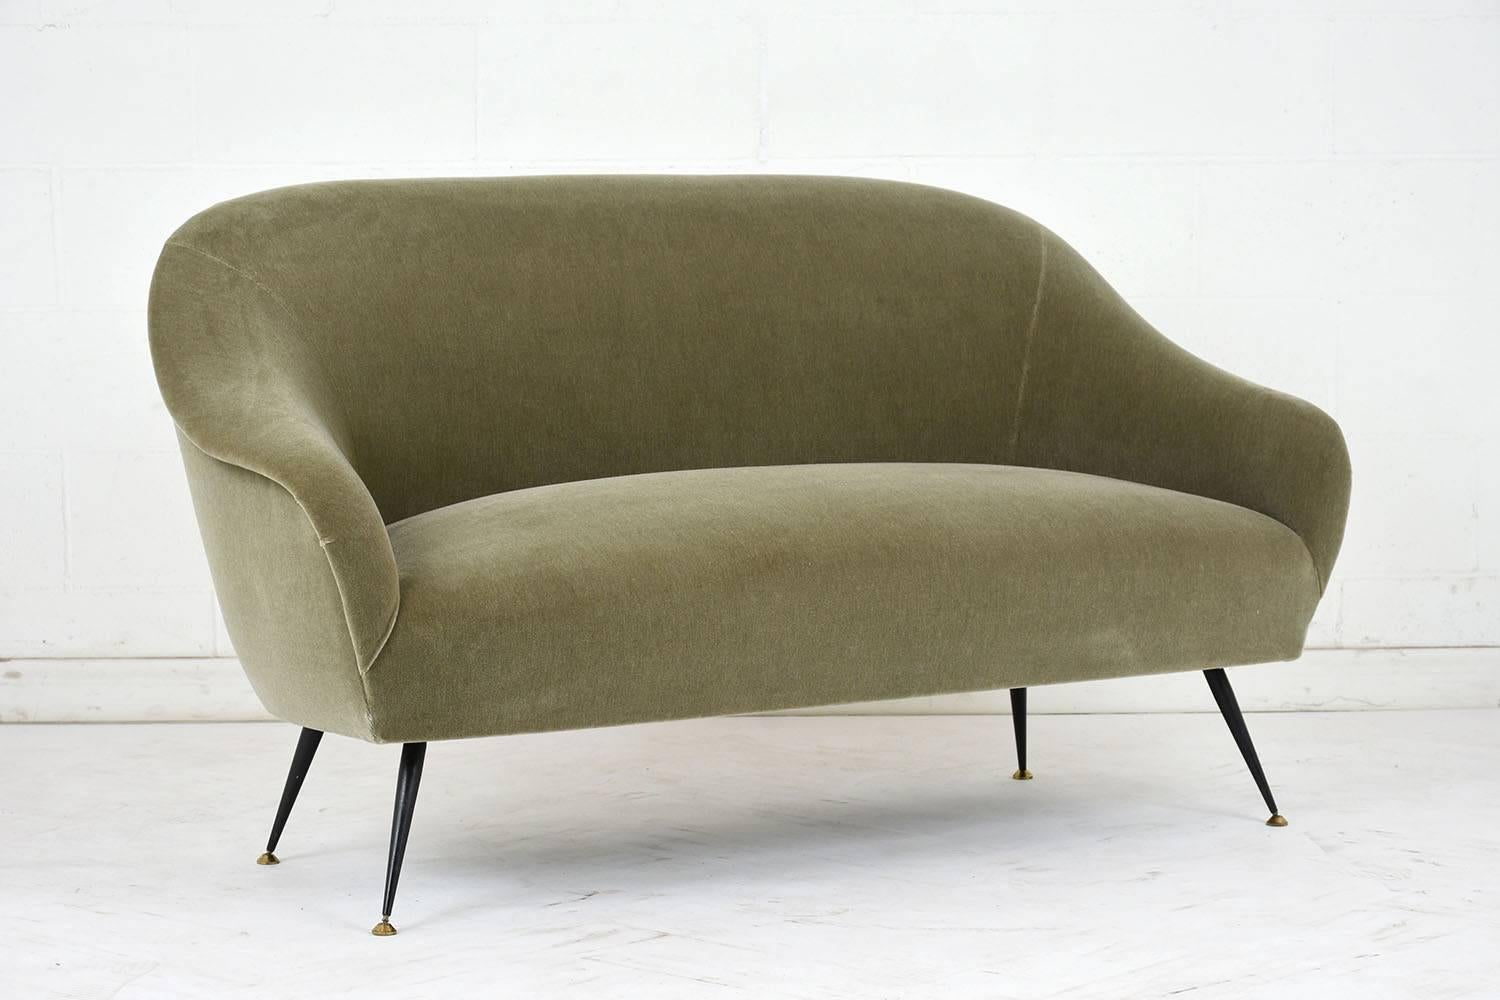 Beau This 1960s Italian Mid Century Modern Style Sofa Is Designed By Antonio  Gorgone.